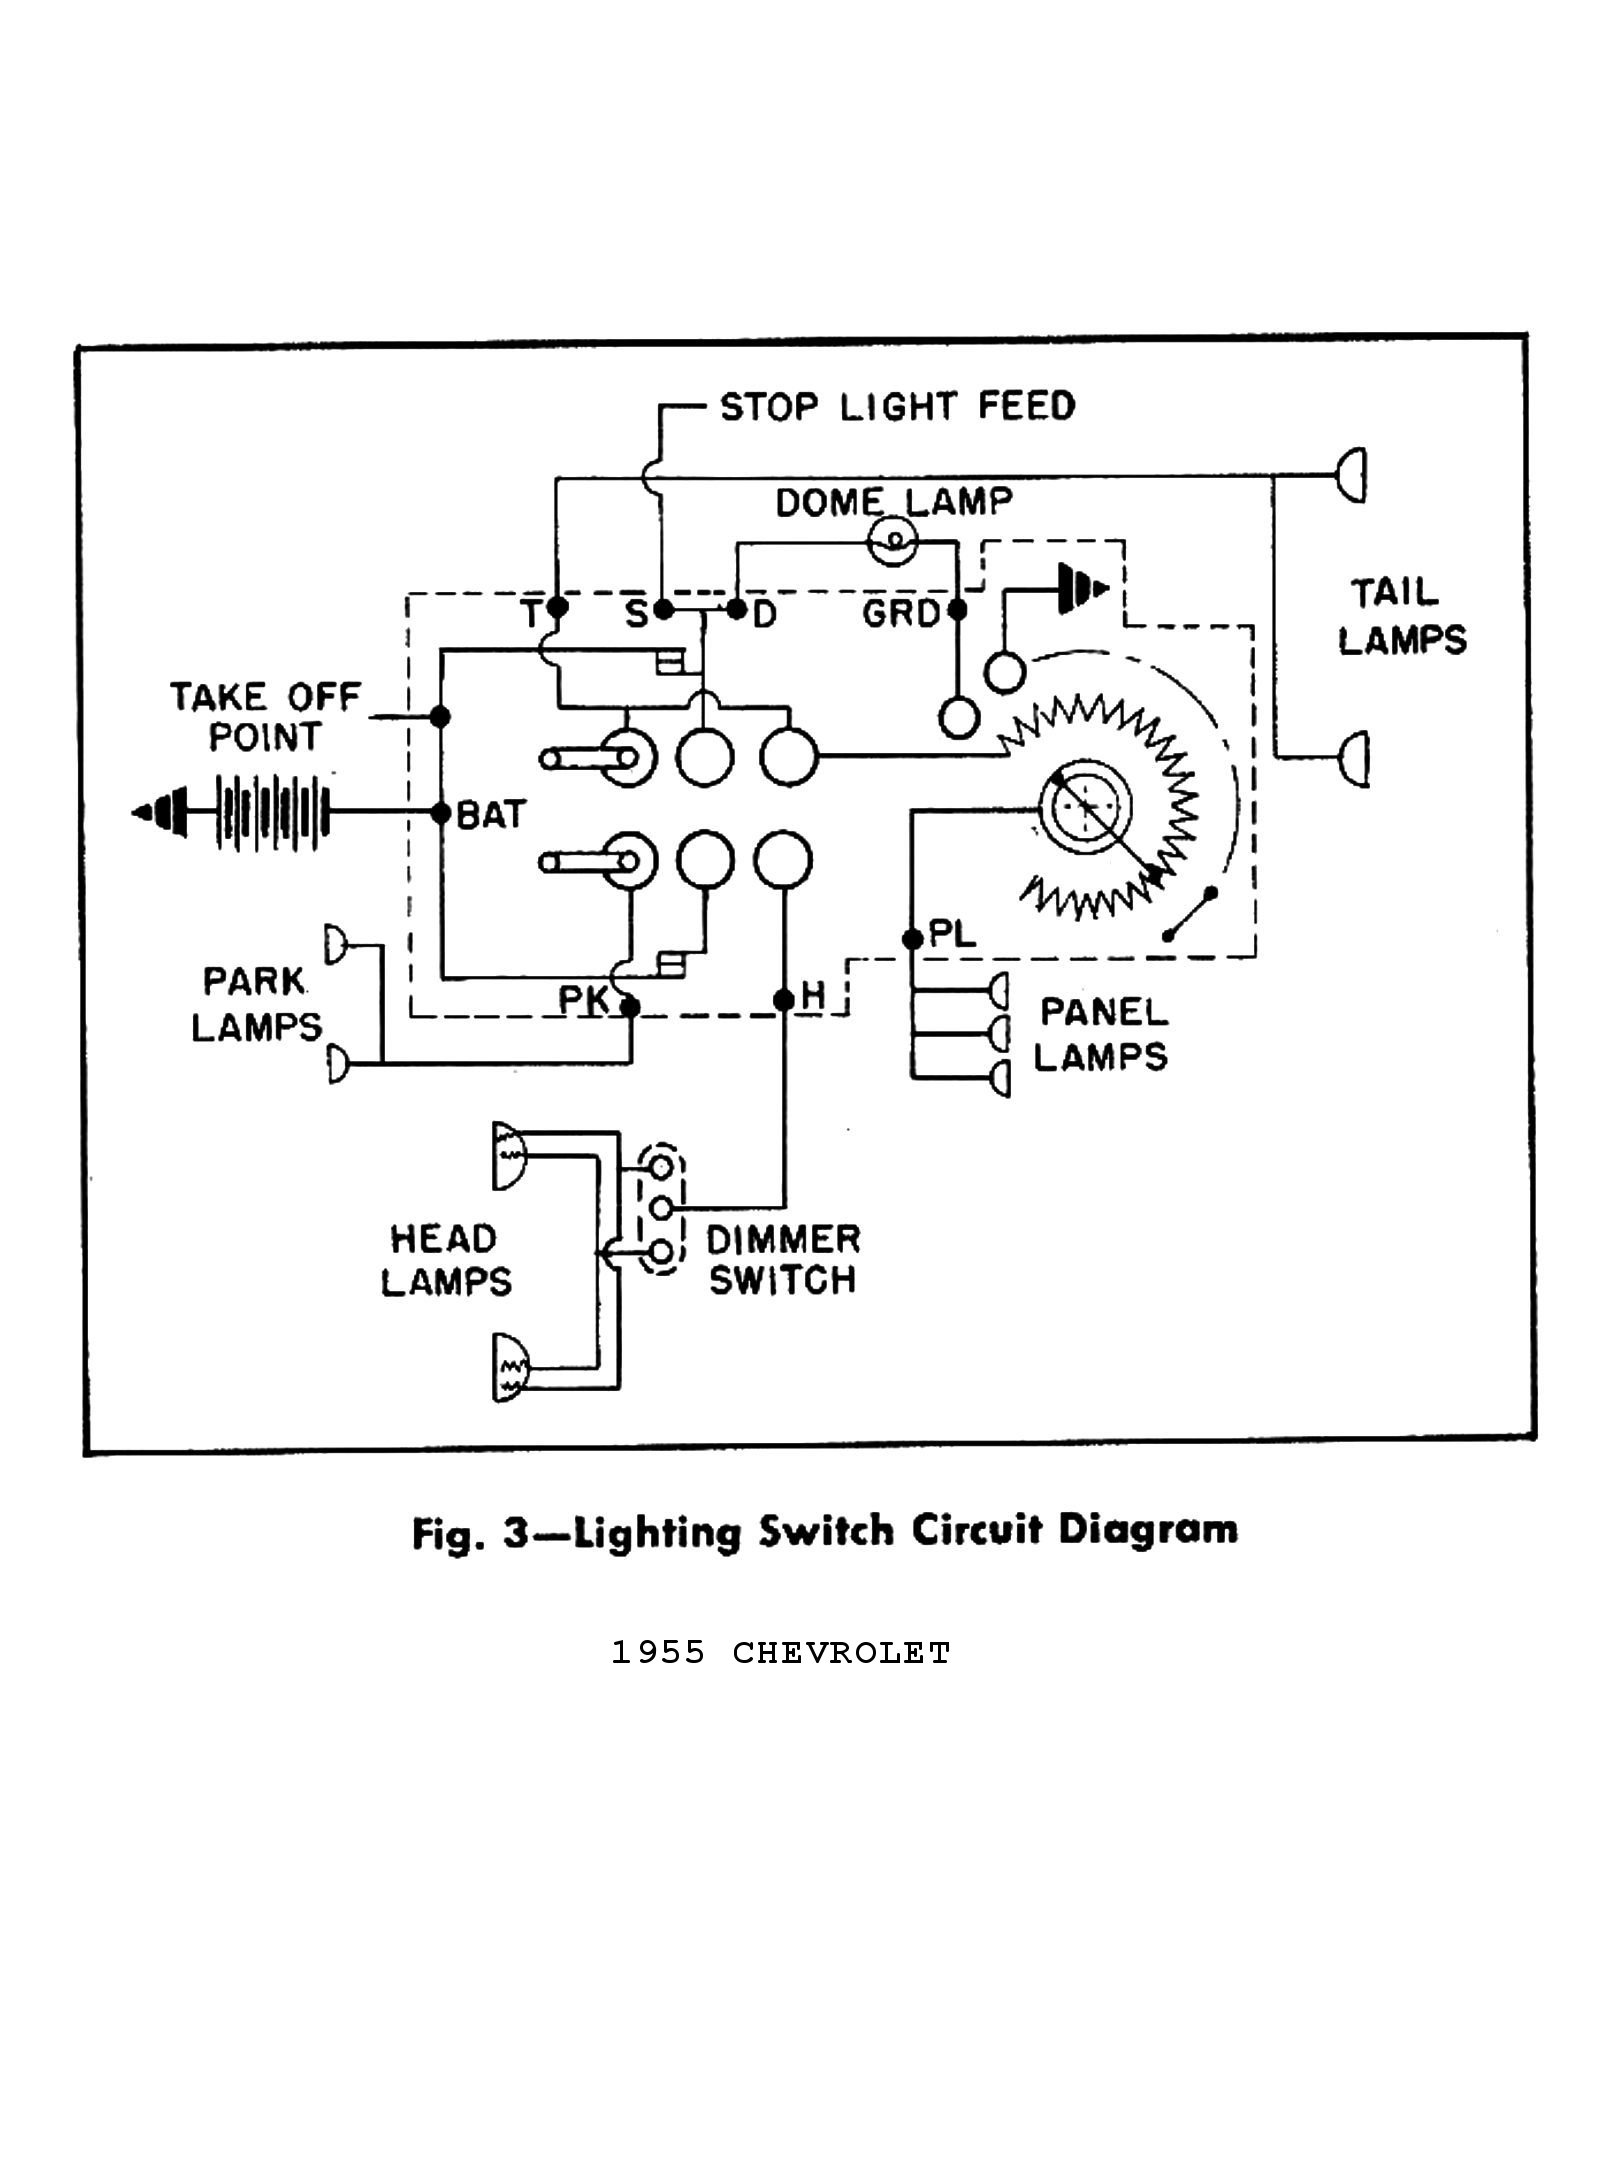 hight resolution of gm steering column dimmer switch wiring diagram schematic wiring rh 30 koch foerderbandtrommeln de mymopar wiring